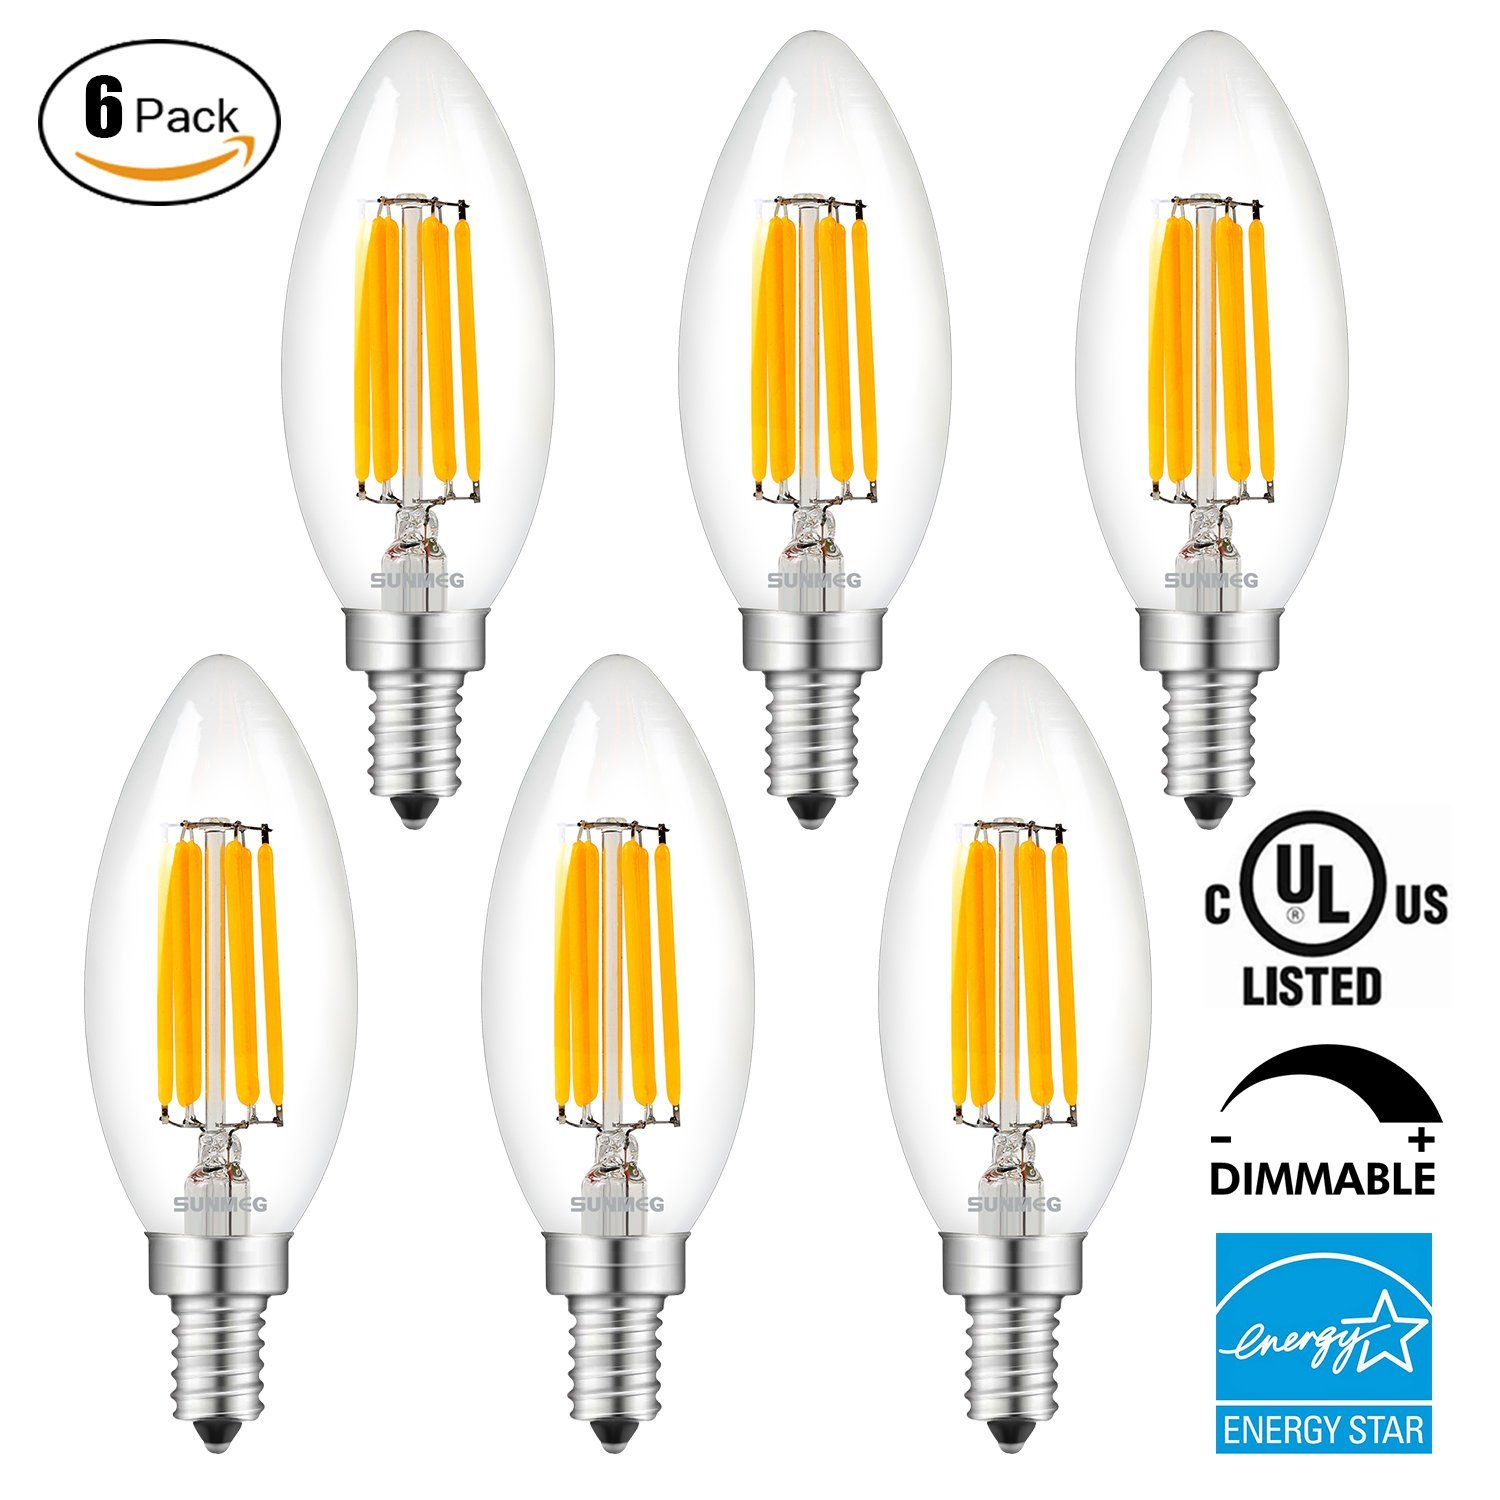 SUNMEG 6W Dimmable Chandelier Bulb, 600LM LED Filament Candle Light Bulbs, 2700K Warm White, 60W Incandescent Replacement, E12 Candelabra Base B11 LED Light Bulb, 6 Pack